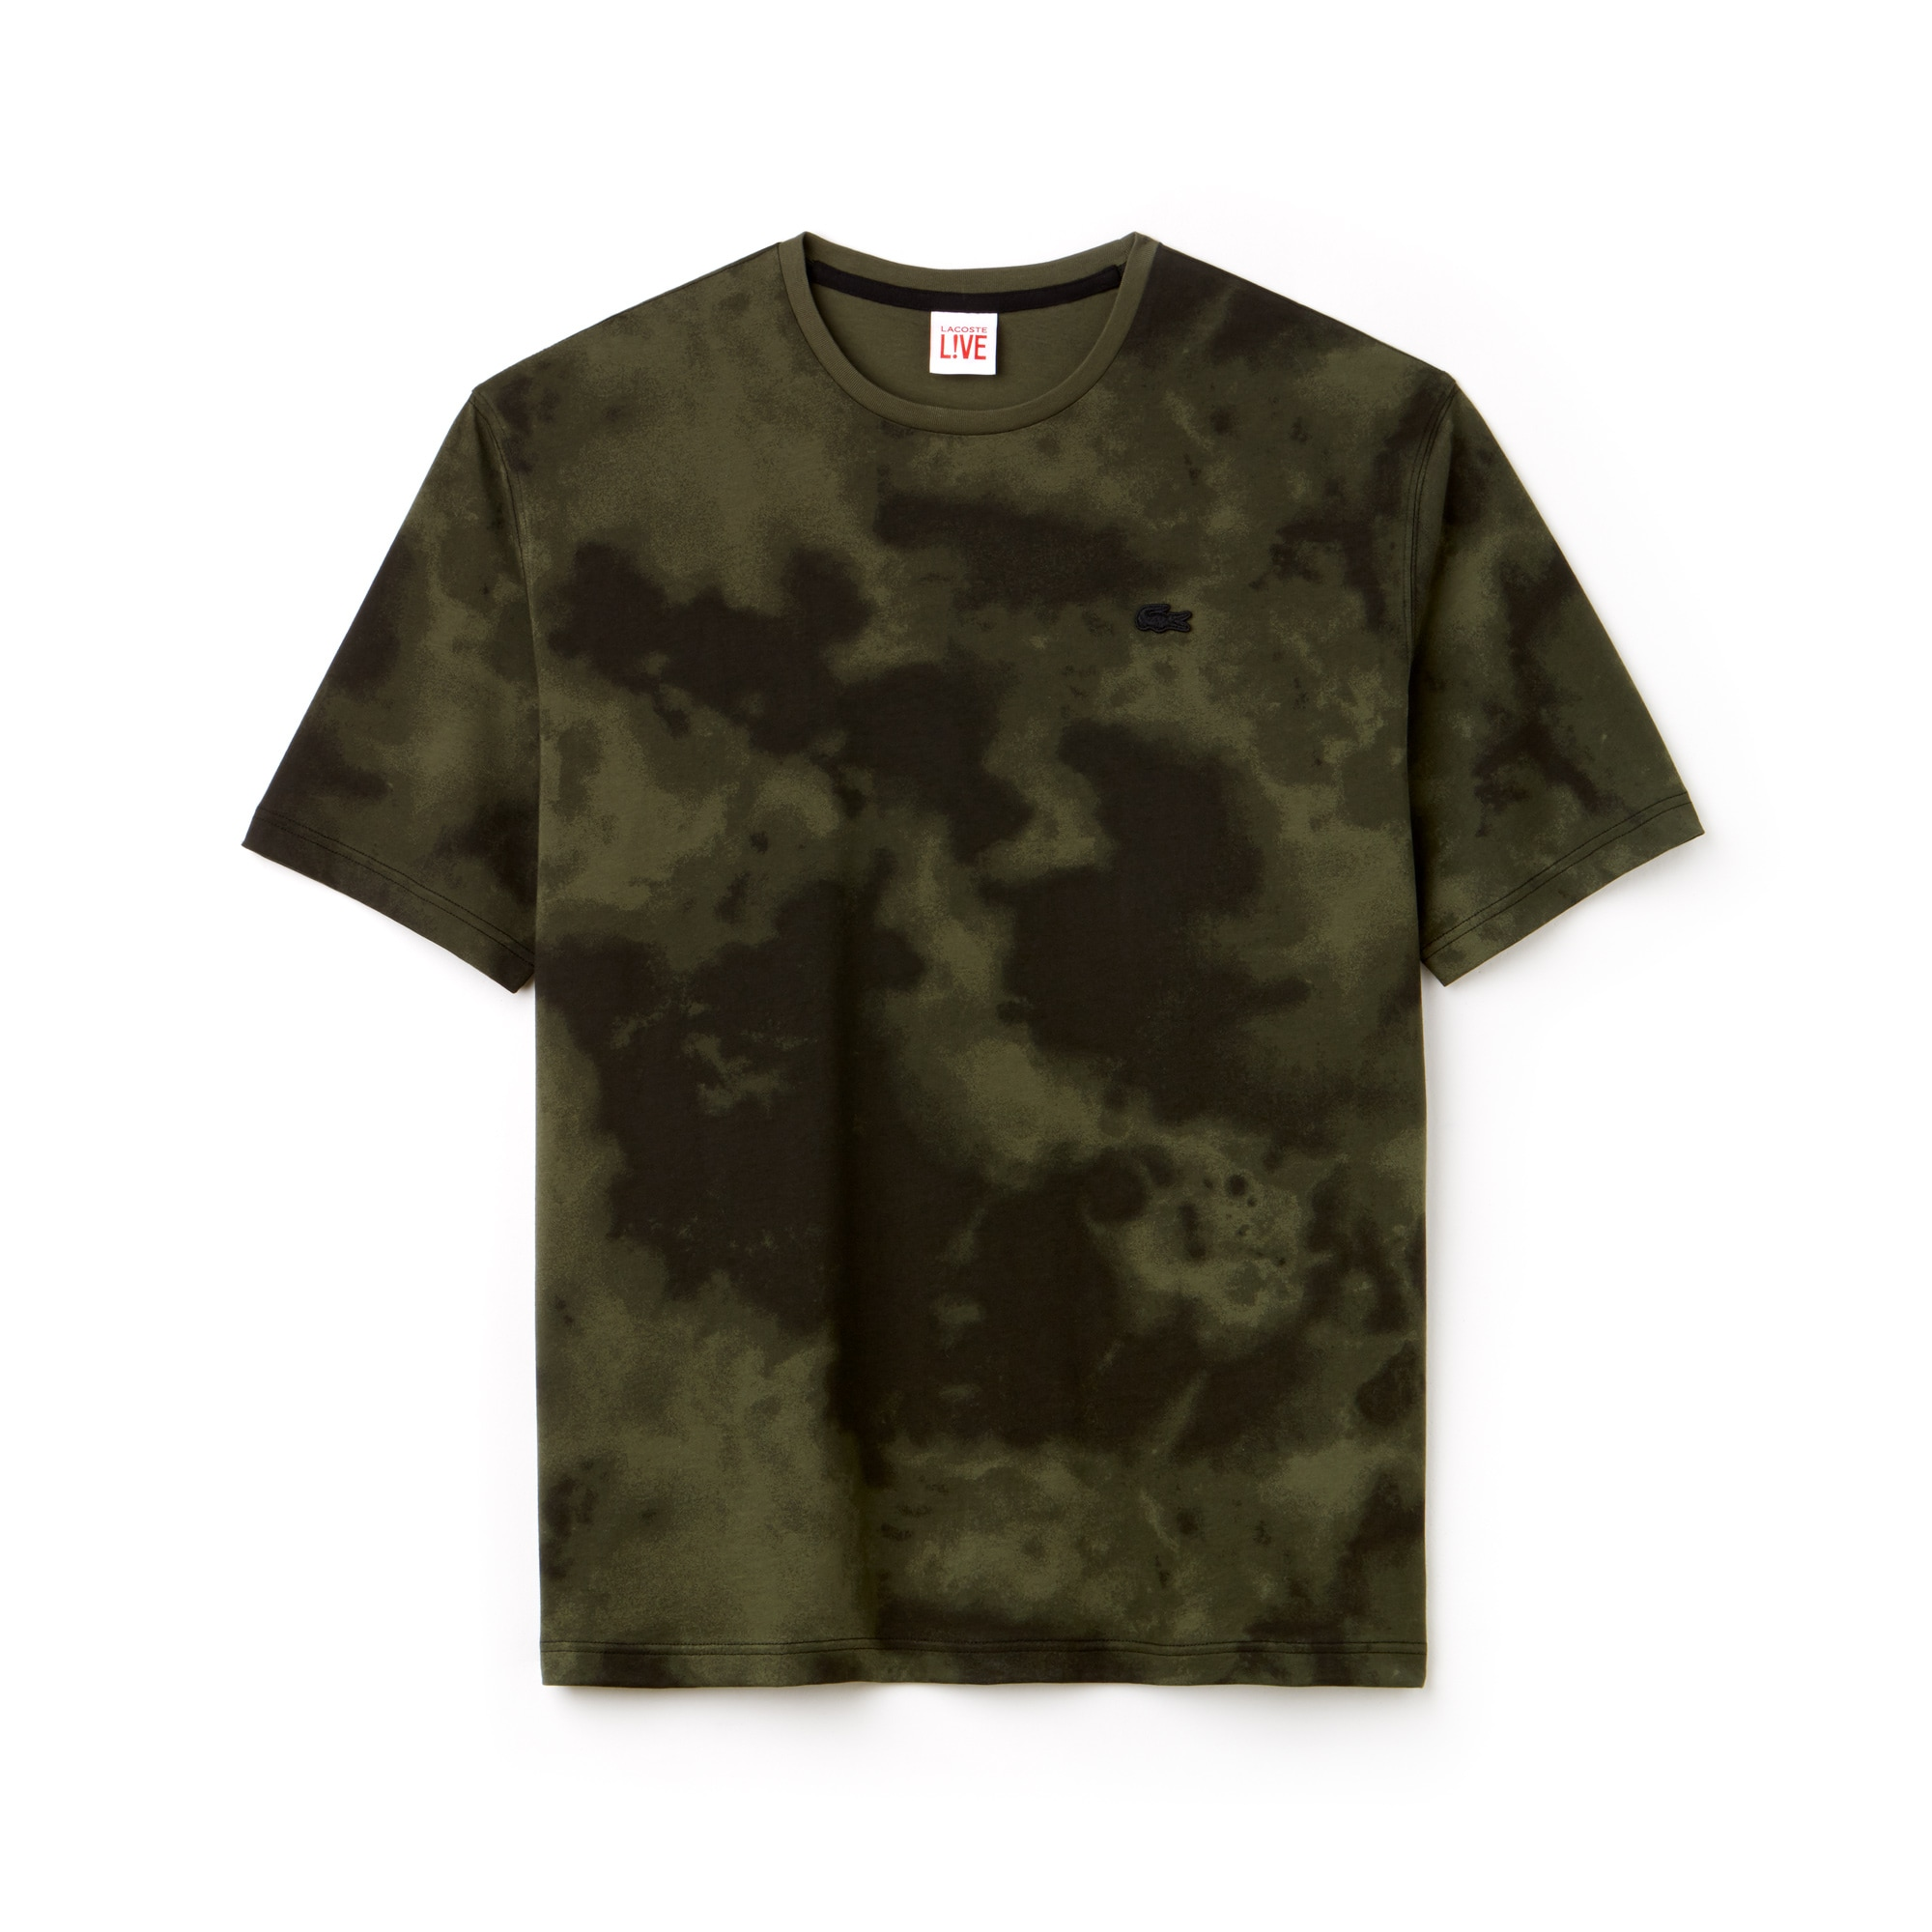 라코스테 Lacoste Mens LIVE Crew Neck Cloud Print Cotton Jersey T-shirt,Khaki Green / Black